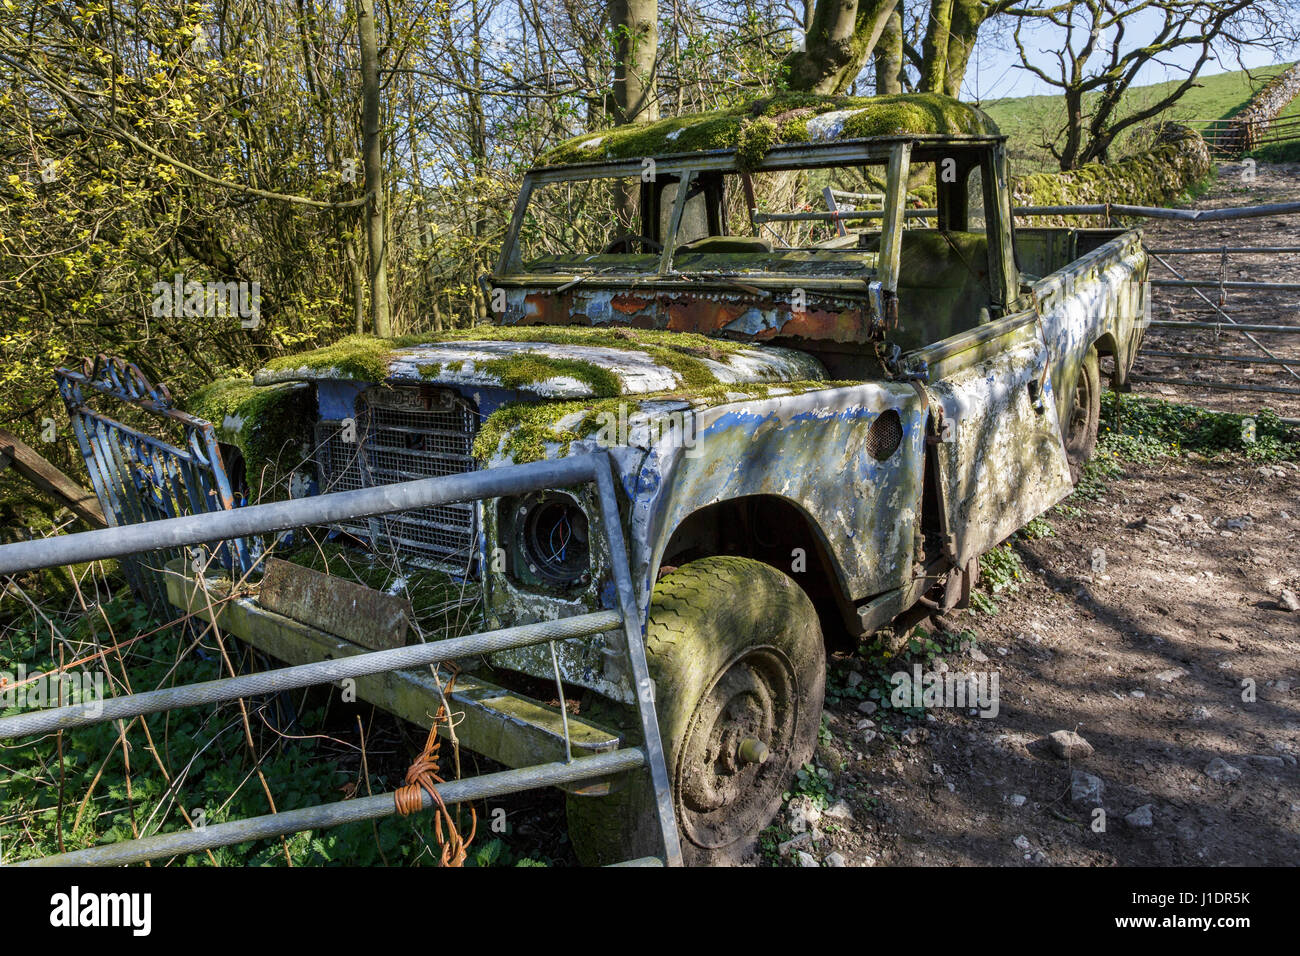 Abandoned Land Rover in a farmyard at Narrowdale, Peak District National Park, Staffordshire, England - Stock Image